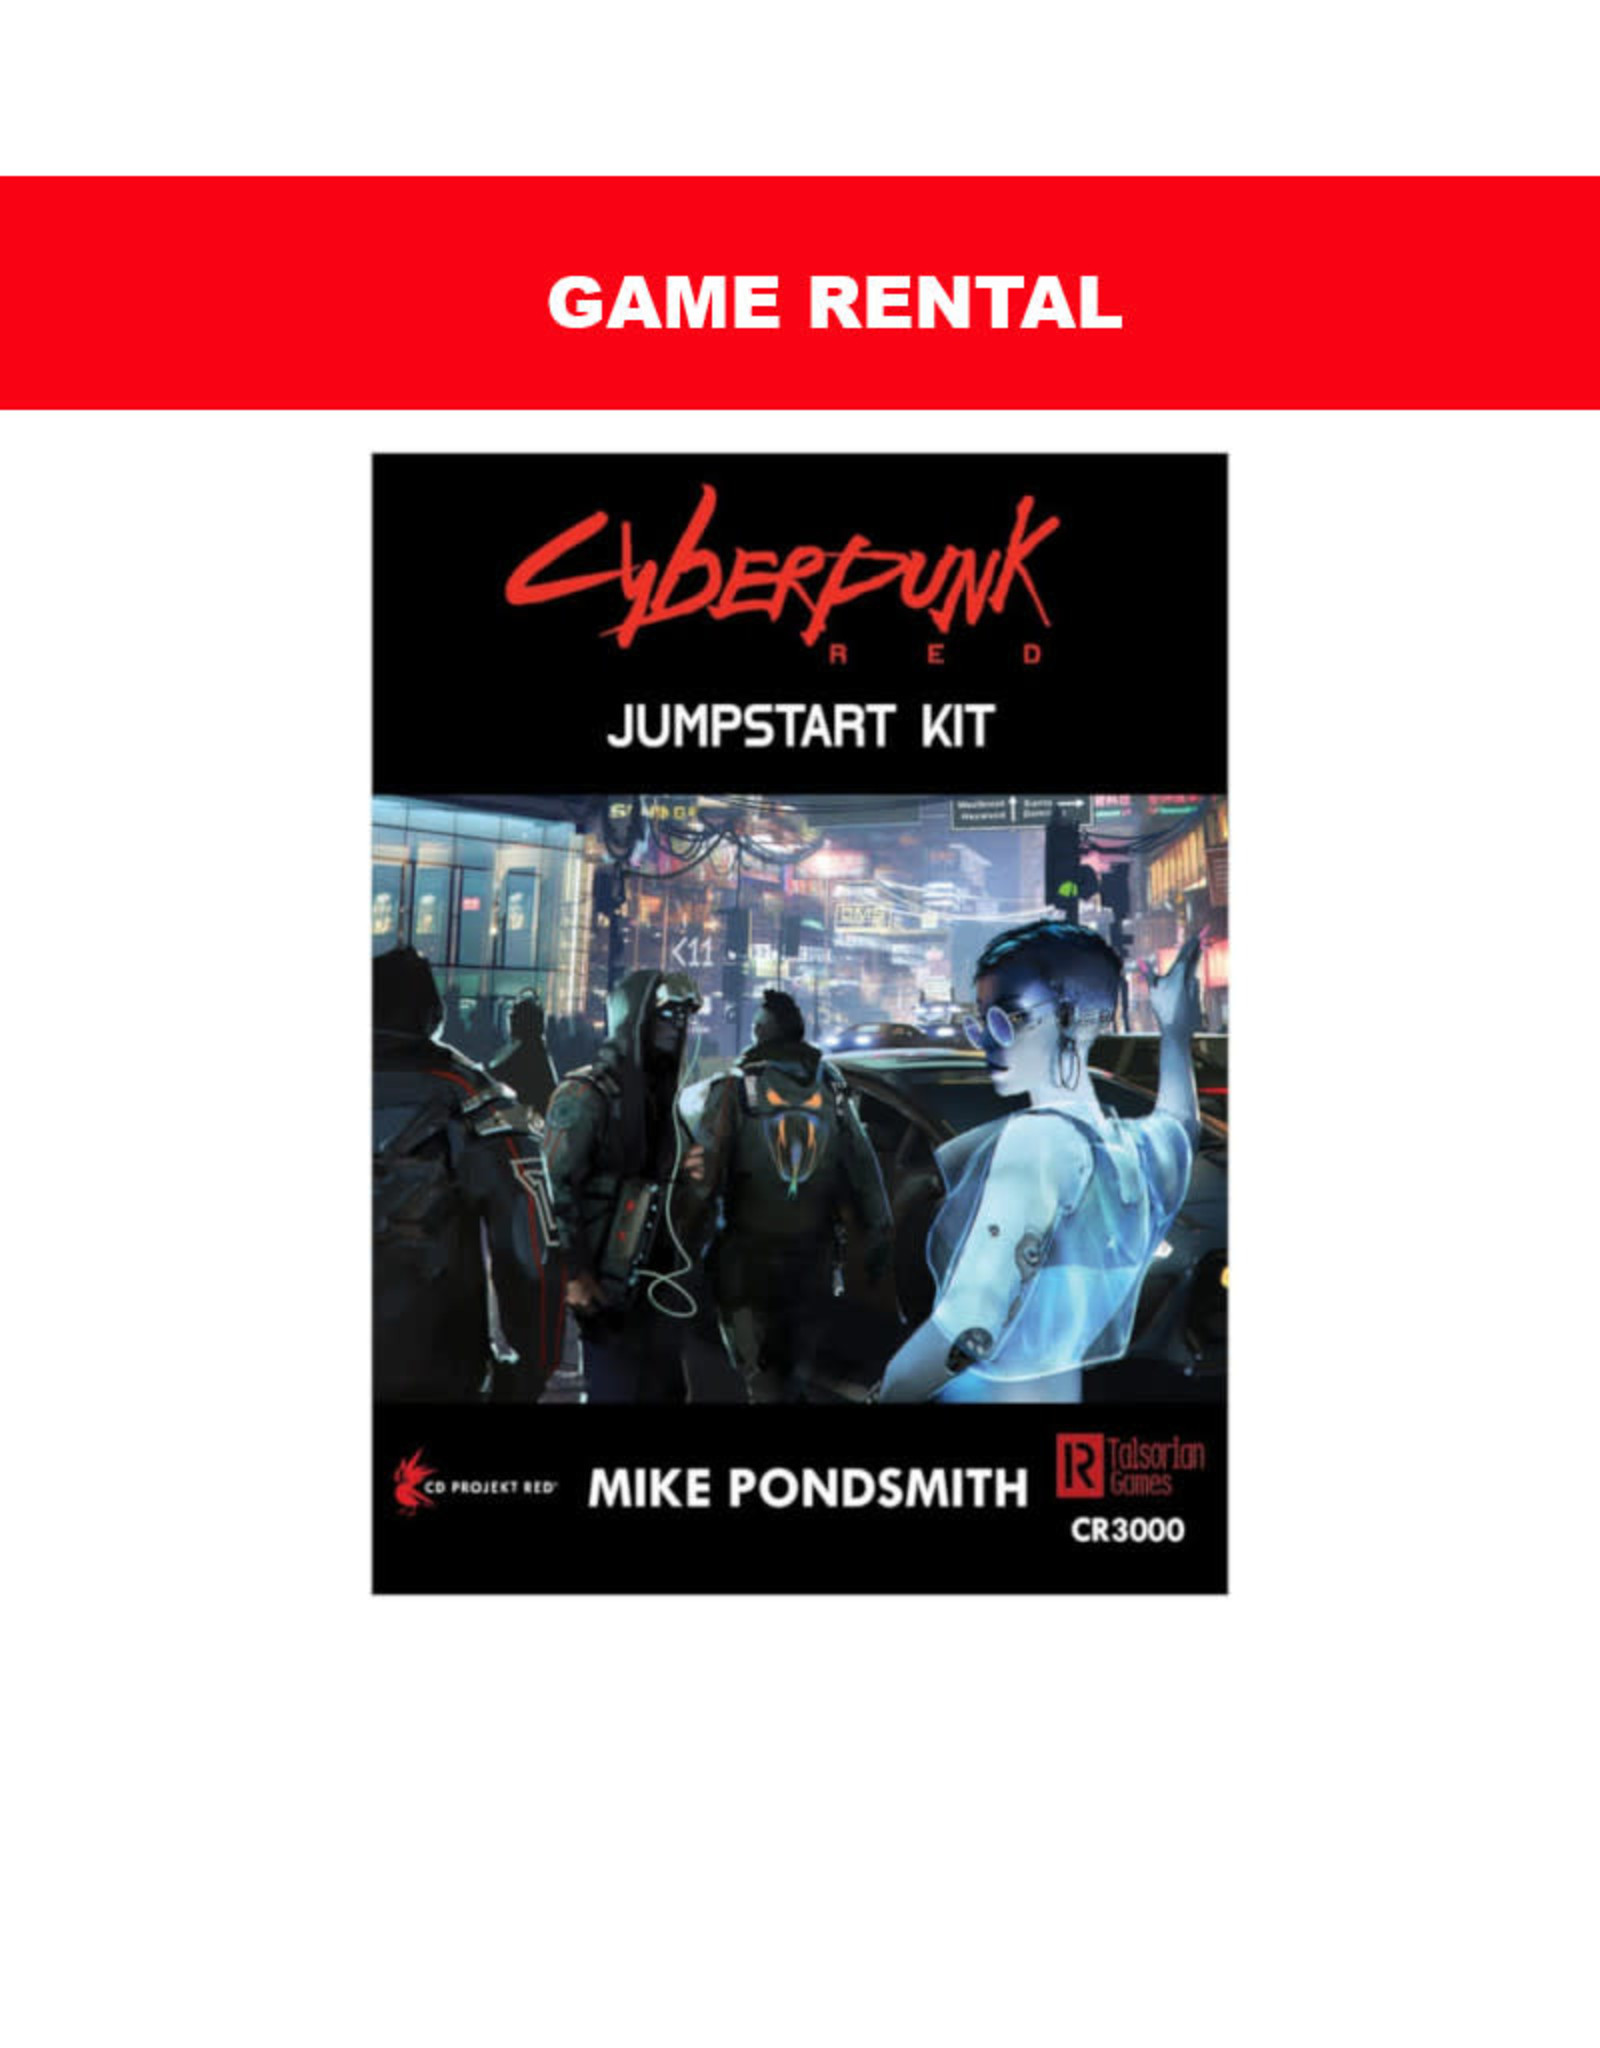 R. Talsorian Games (RENT) Cyberpunk Red Jumpstart Kit For a Day. Love It! Buy It!